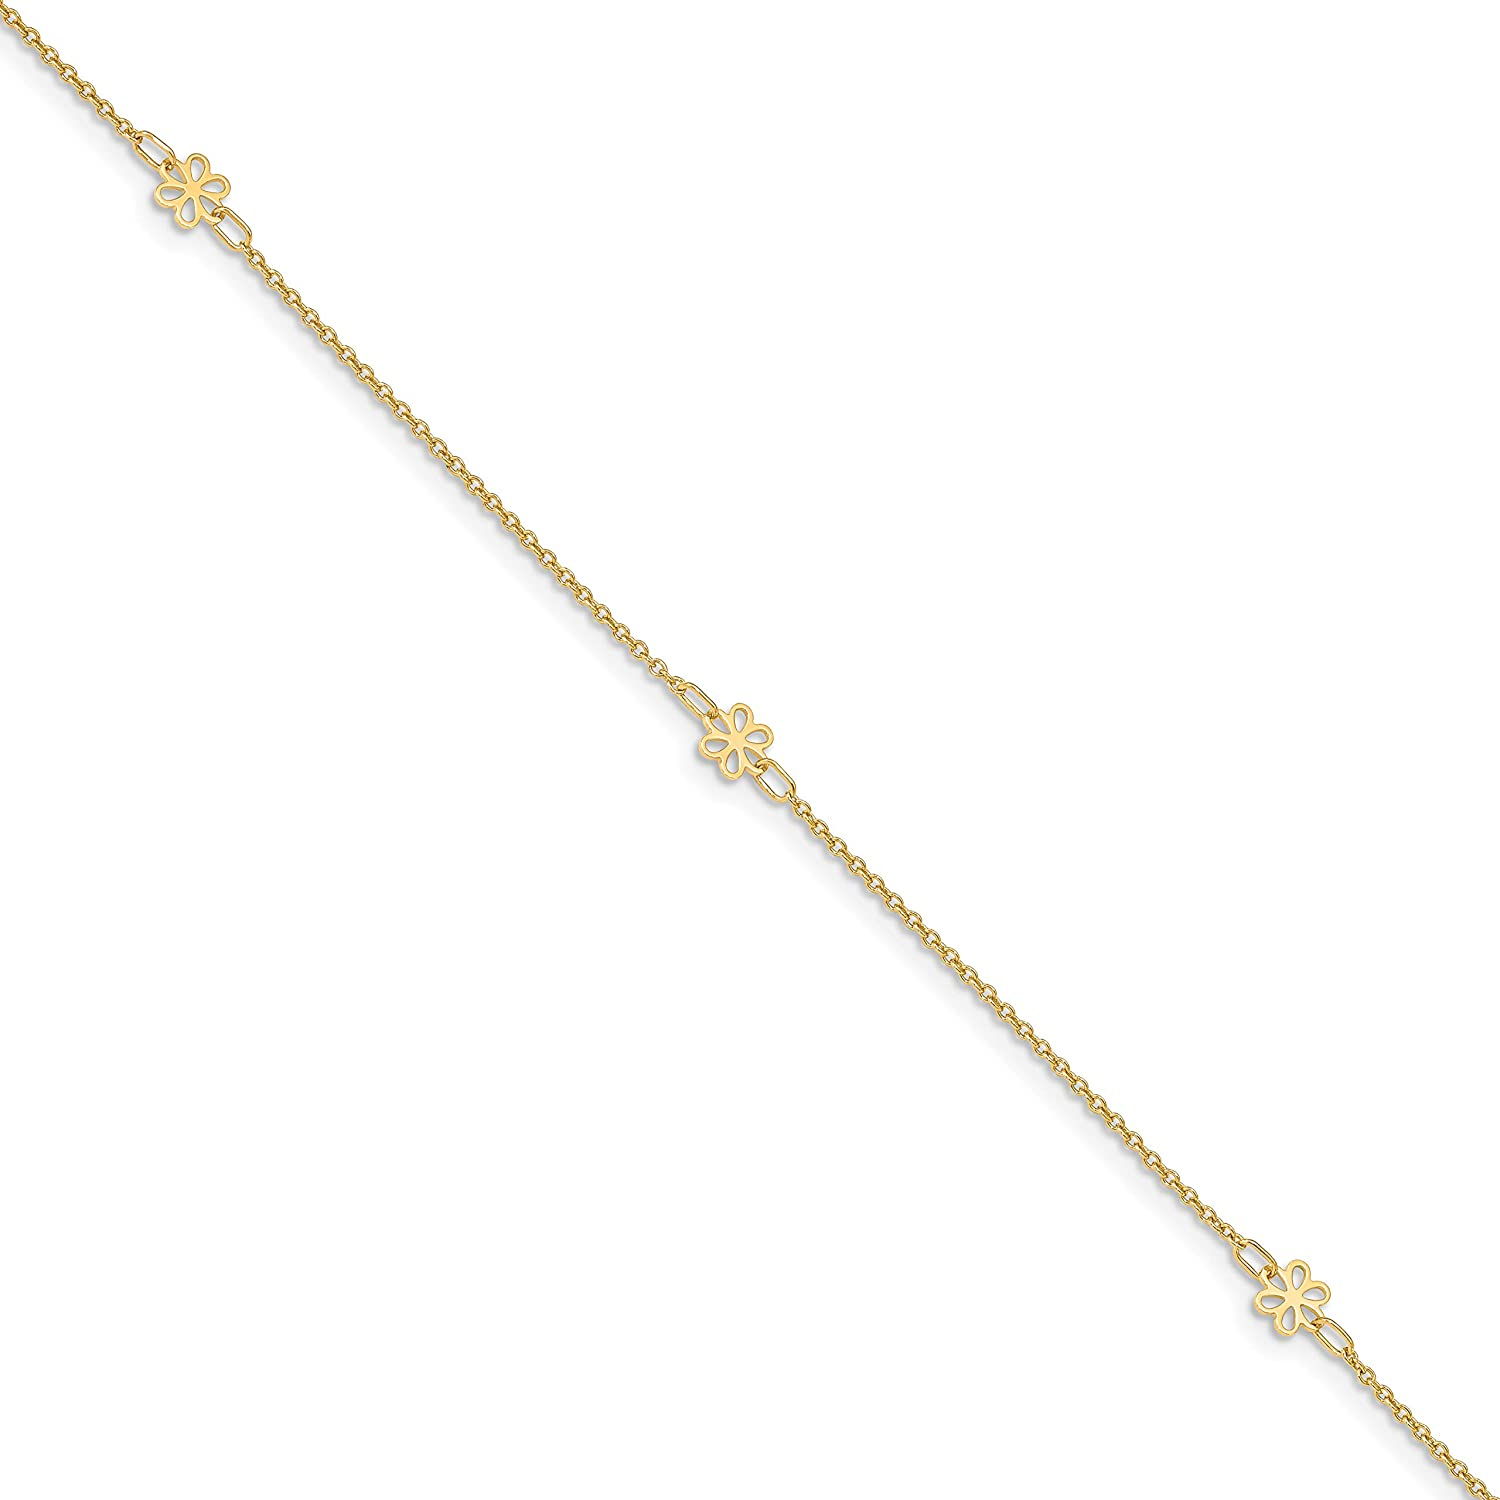 14K Polished Flowers w/1 in ext Anklet